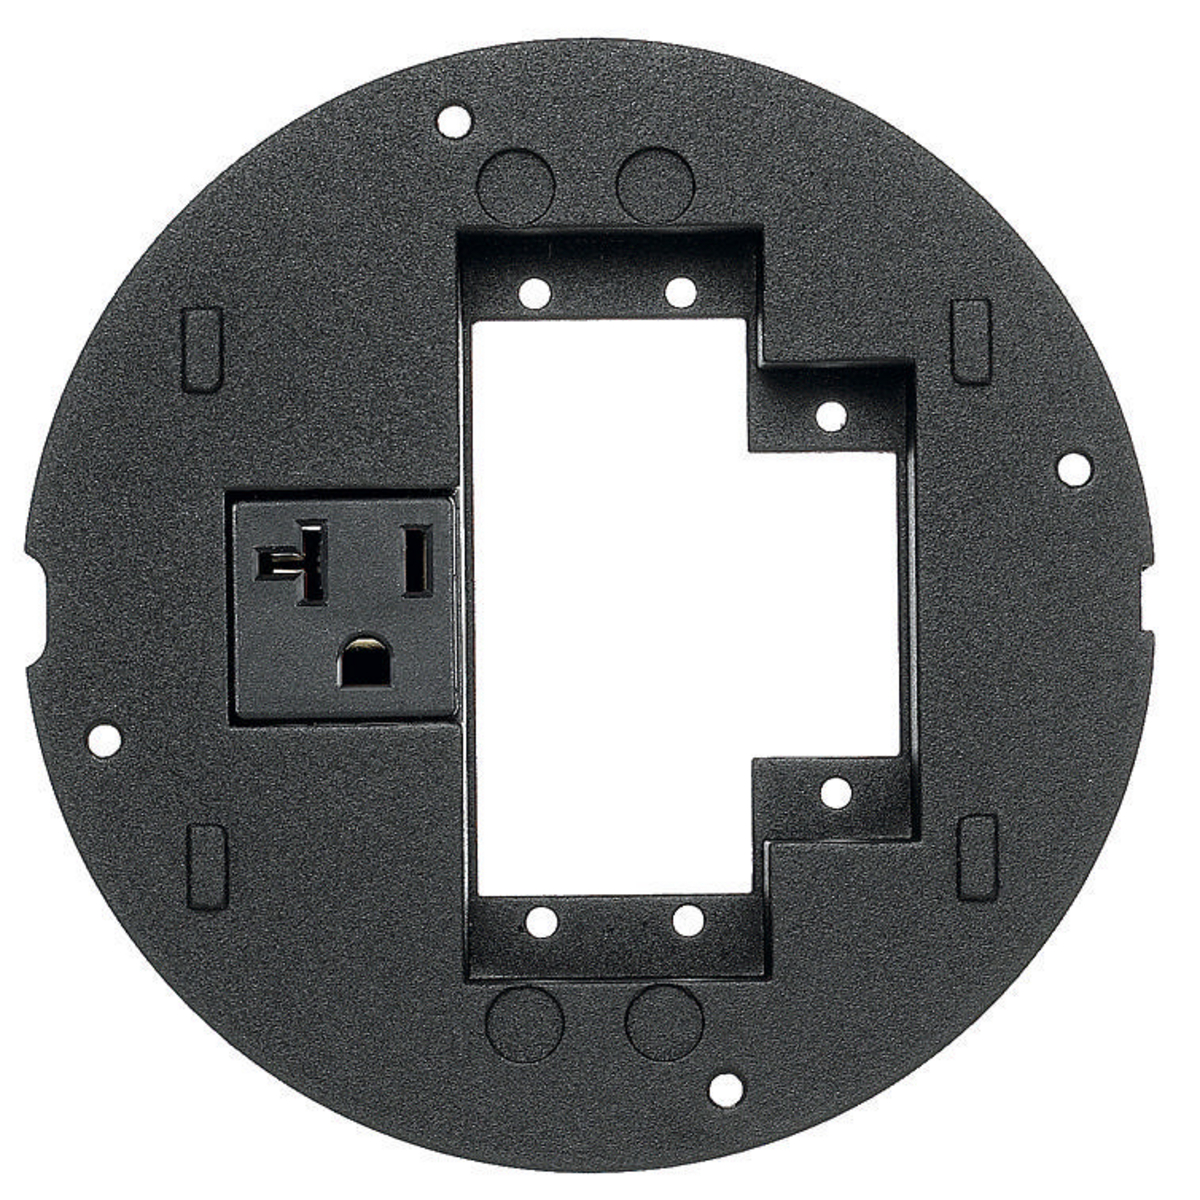 Hubbell S1SPEXT2 SystemOne Sub-Plate for 2 Extron APP Plate 1 Extron MAAP and 20 Amp Receptacle